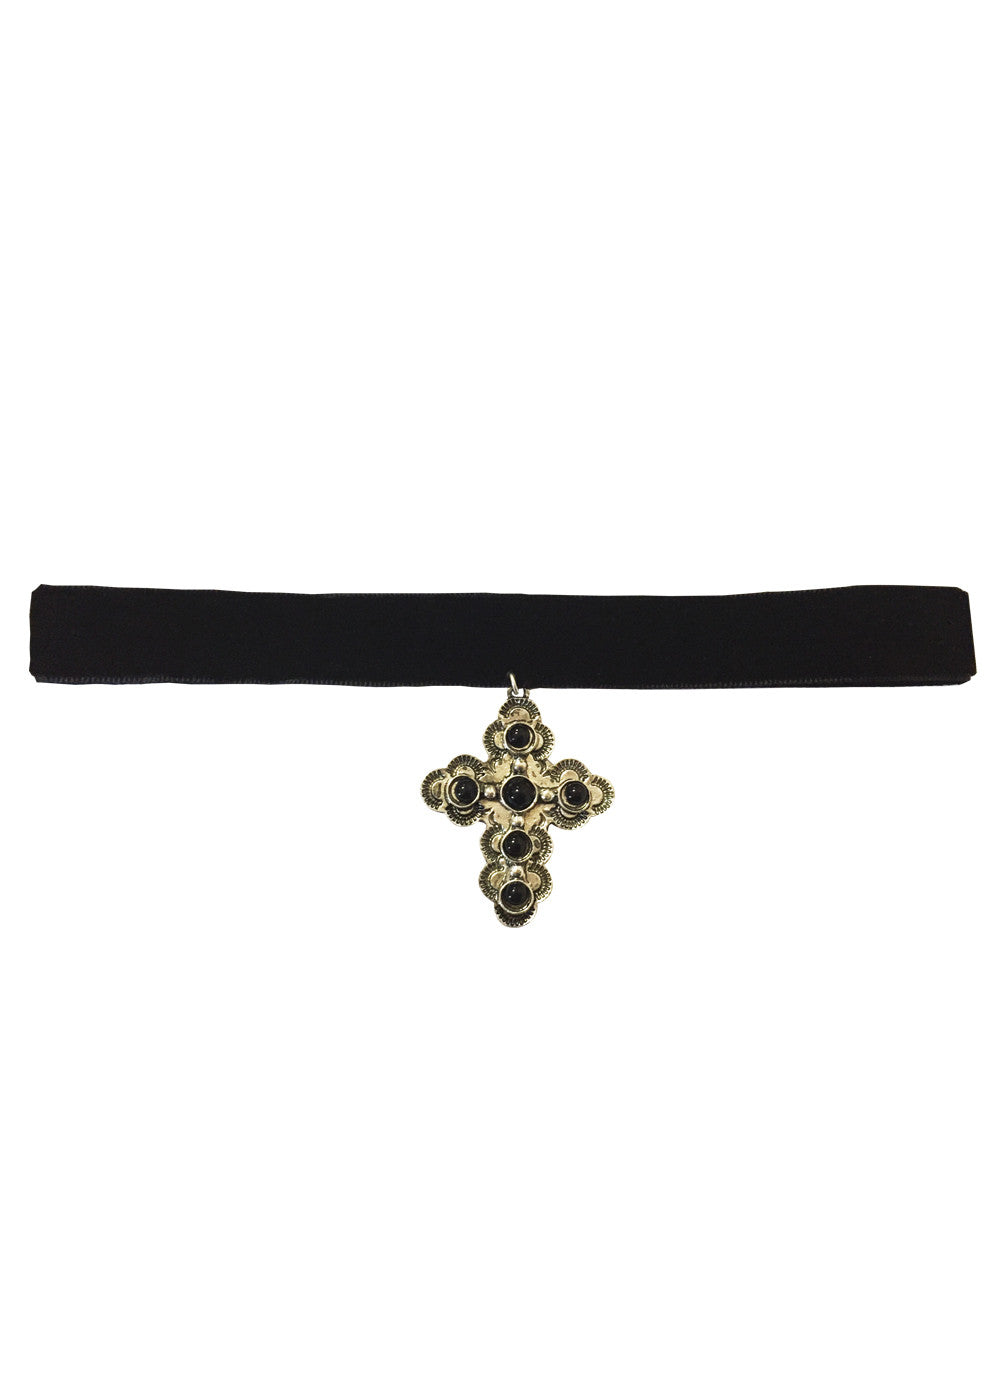 Cross My Heart Choker - Silver & Black